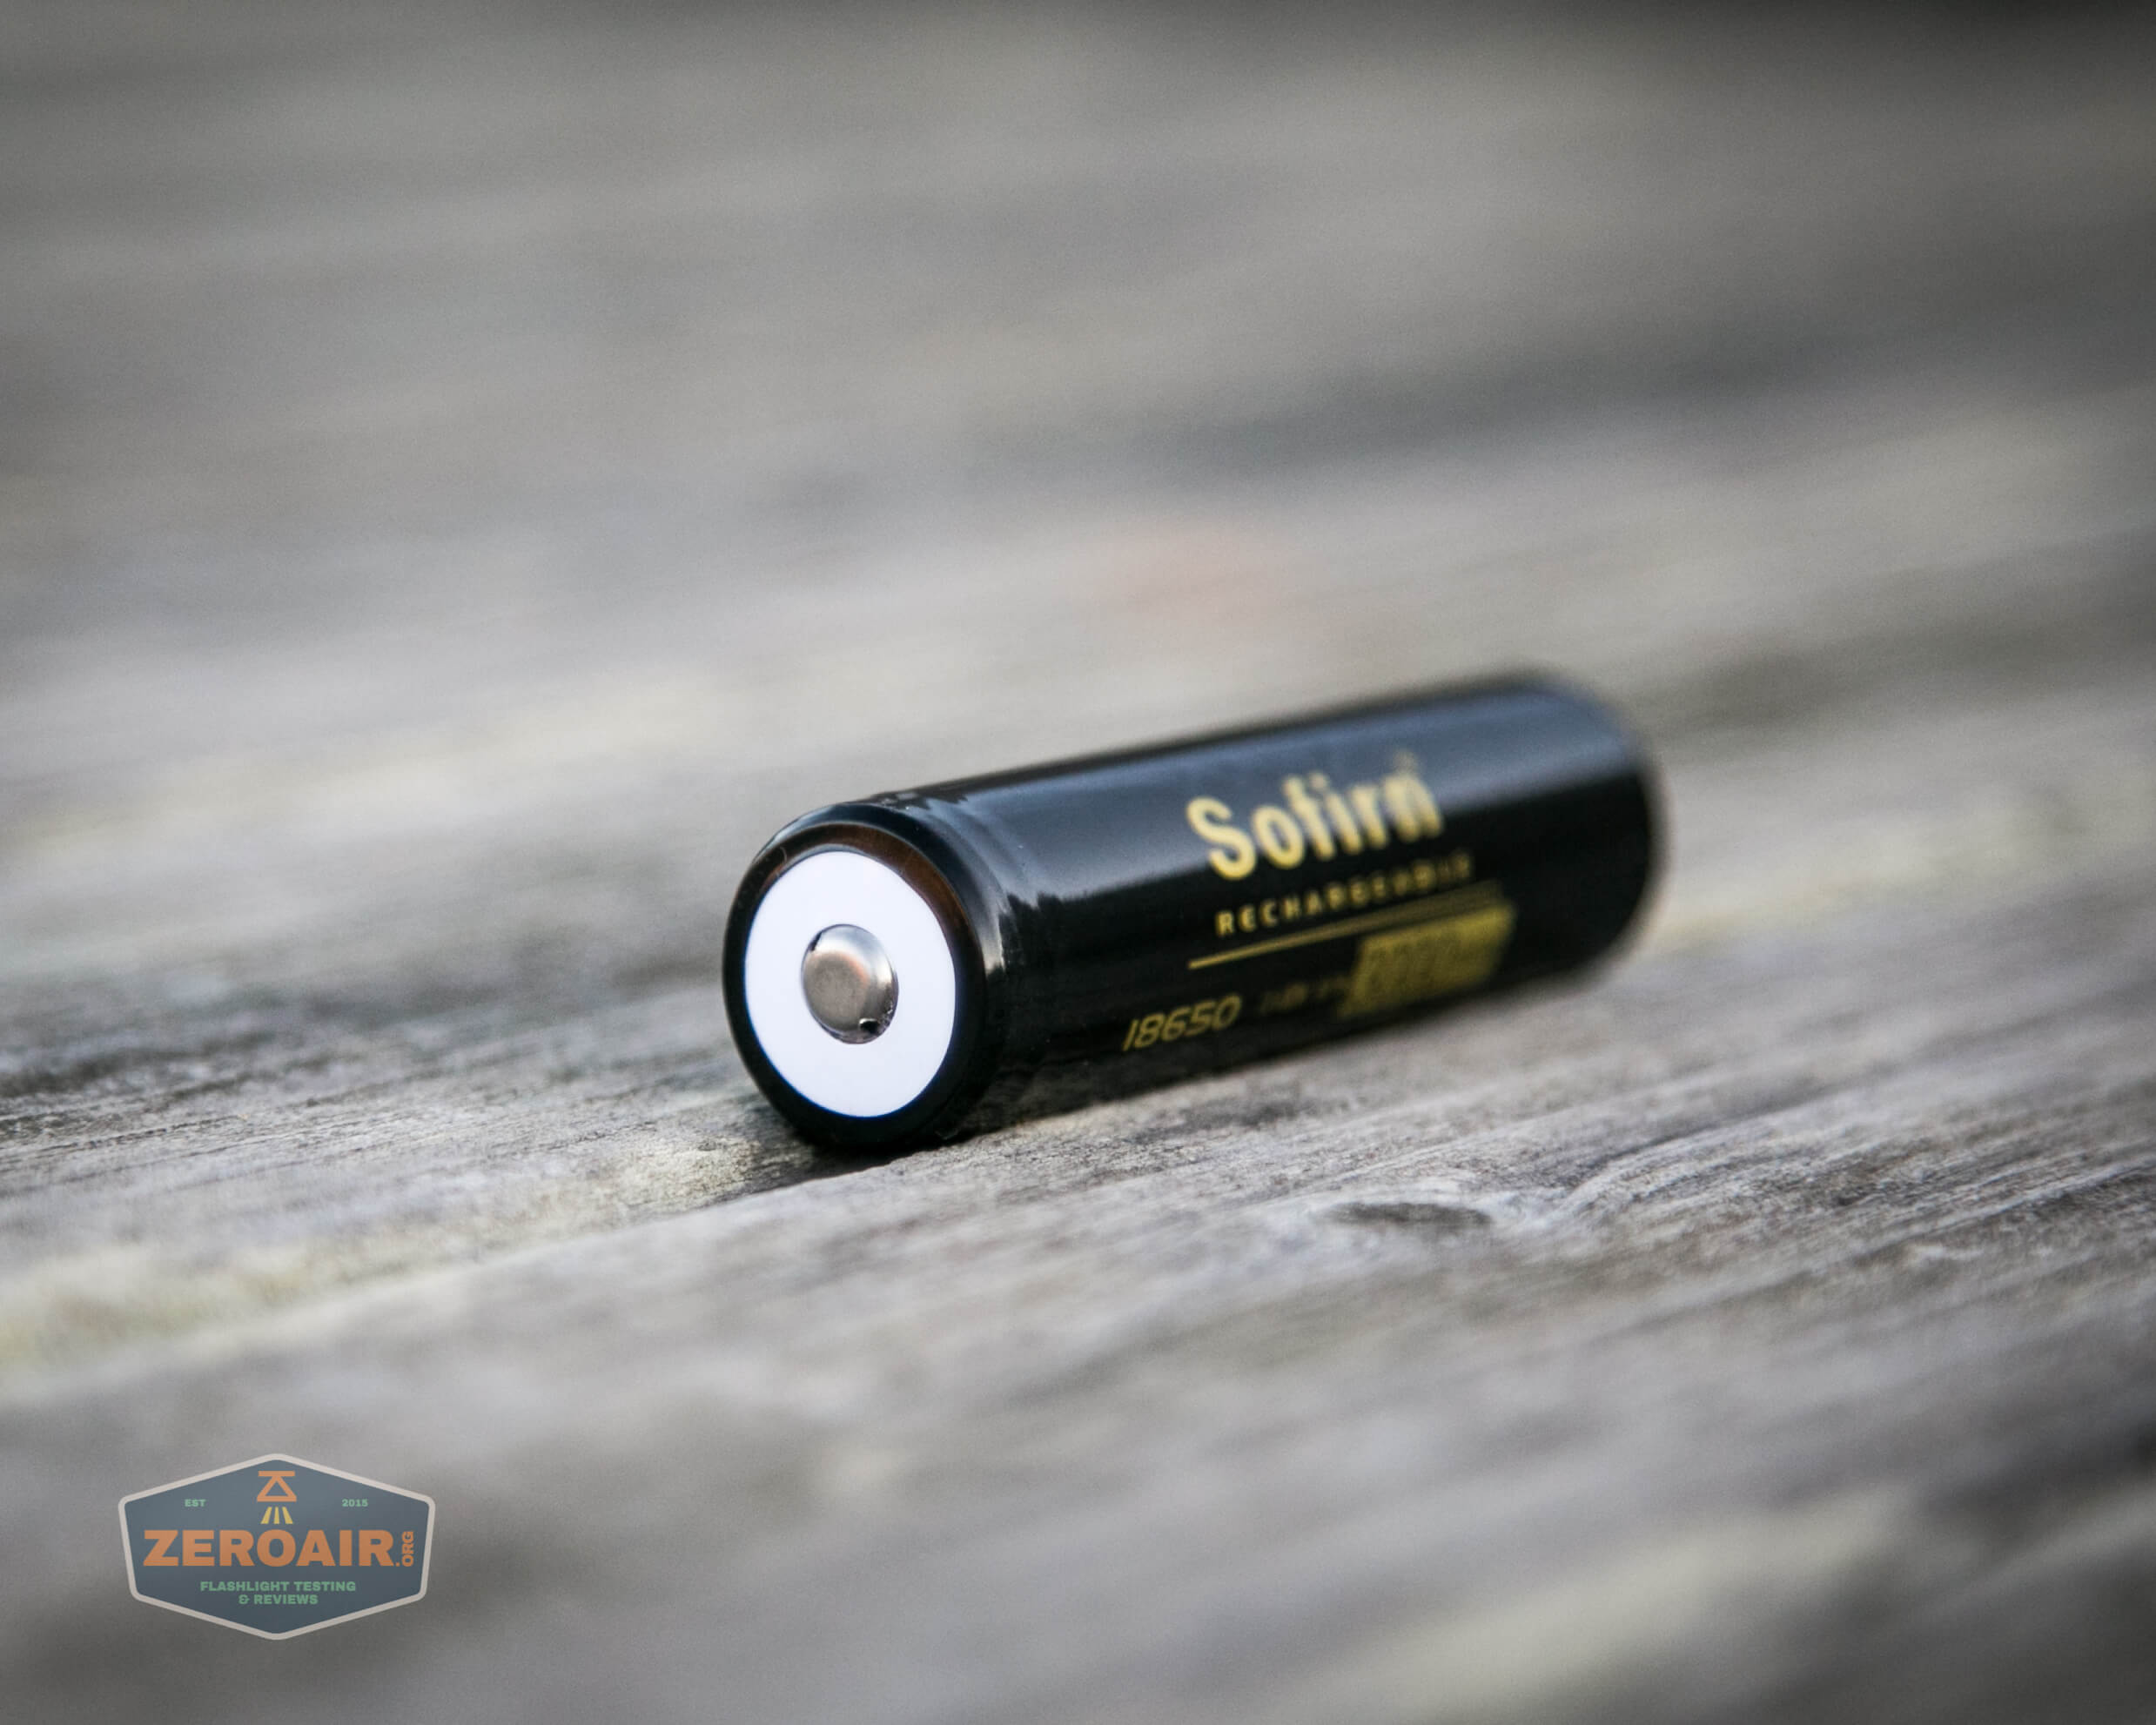 sofirn sc31 pro Andúril 18650 flashlight 3000mah 18650